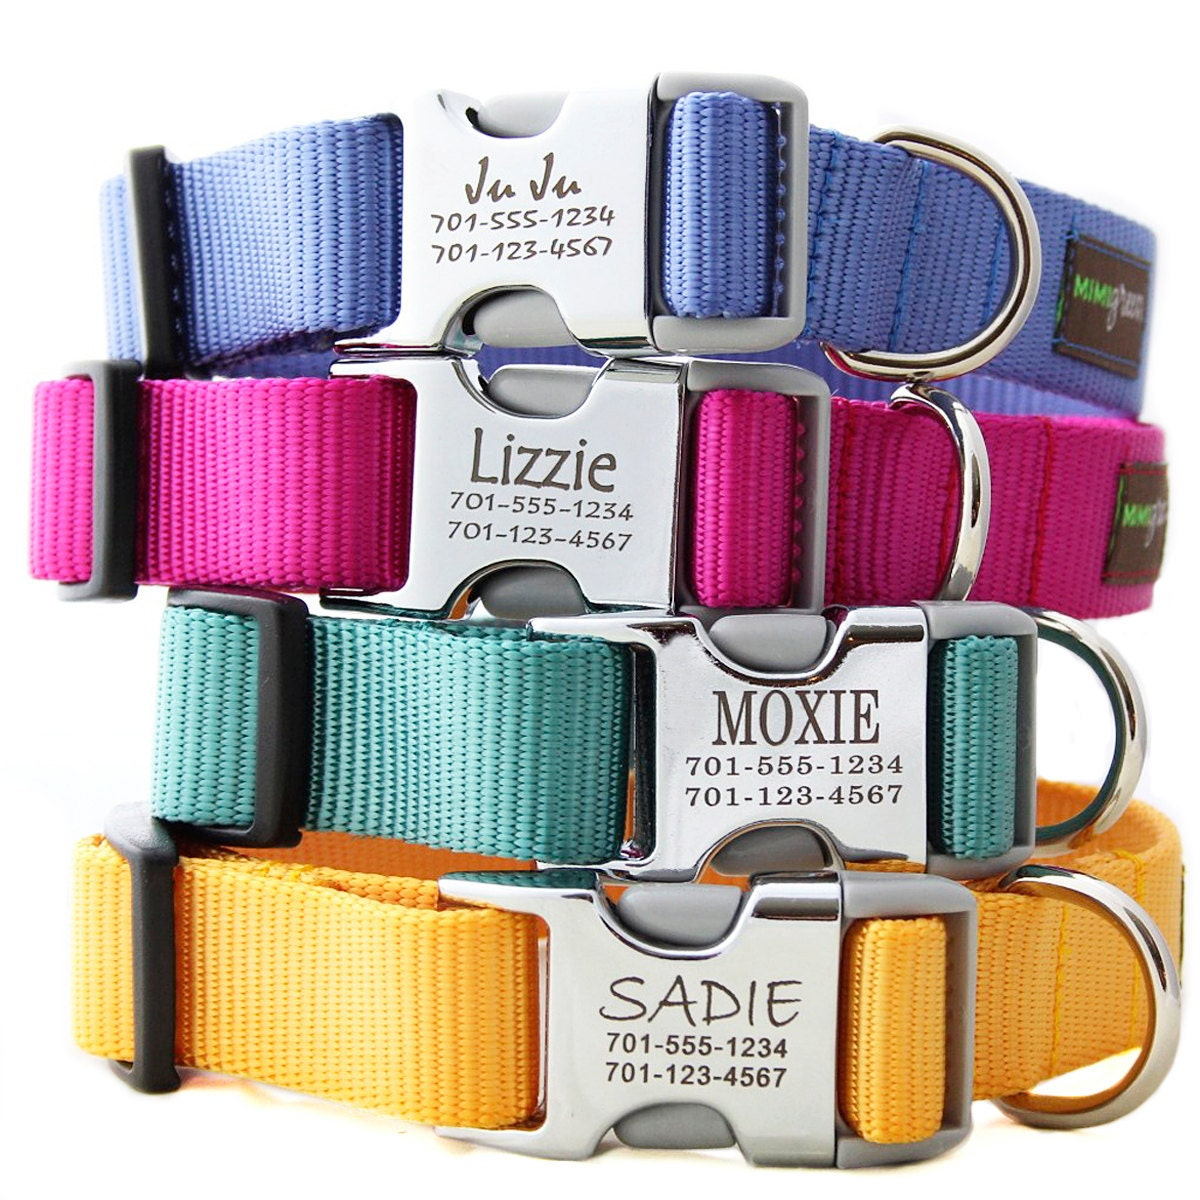 Metal Engraved Buckle Dog Collar - Personalized with 21 Nylon Colors to Choose From - Monogram Buckle Dog Collar - Custom Name Tag Collar